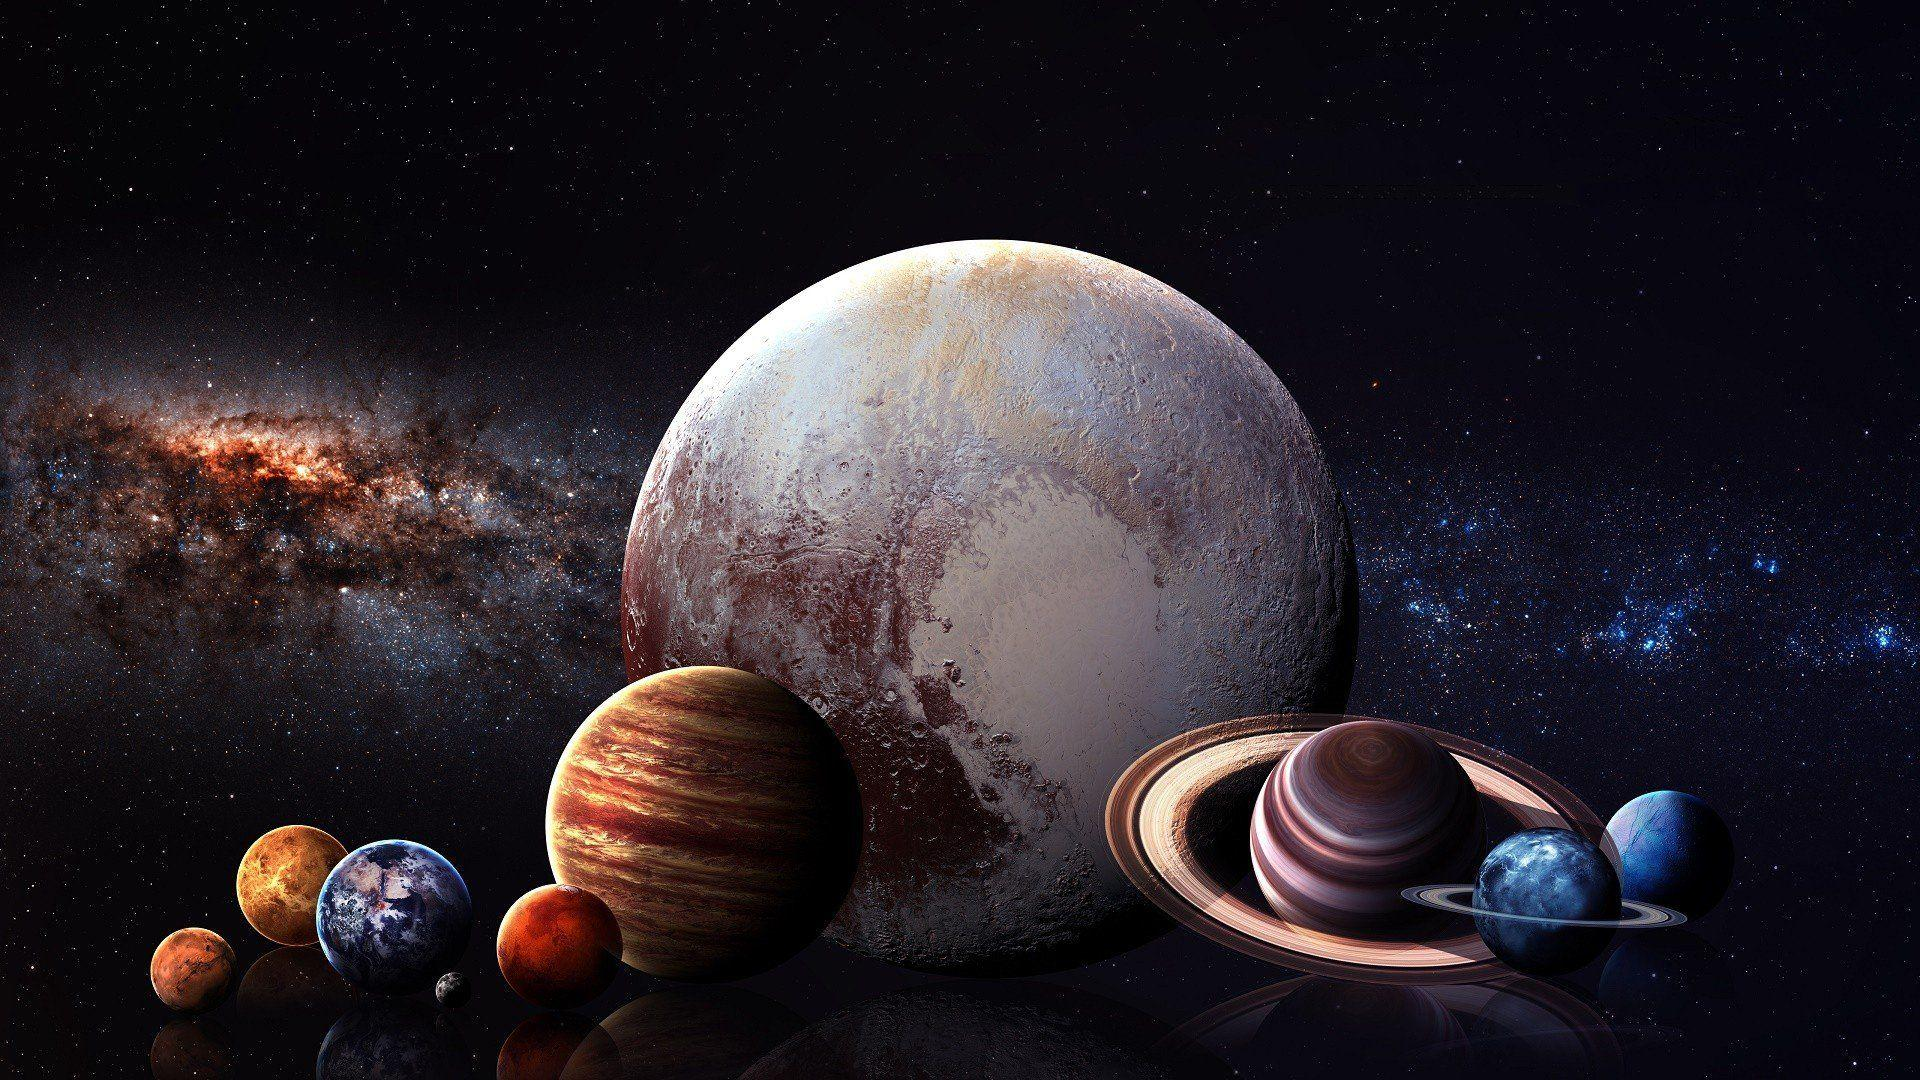 digital art, Space art, Planet, Space, Stars, Solar System, Milky